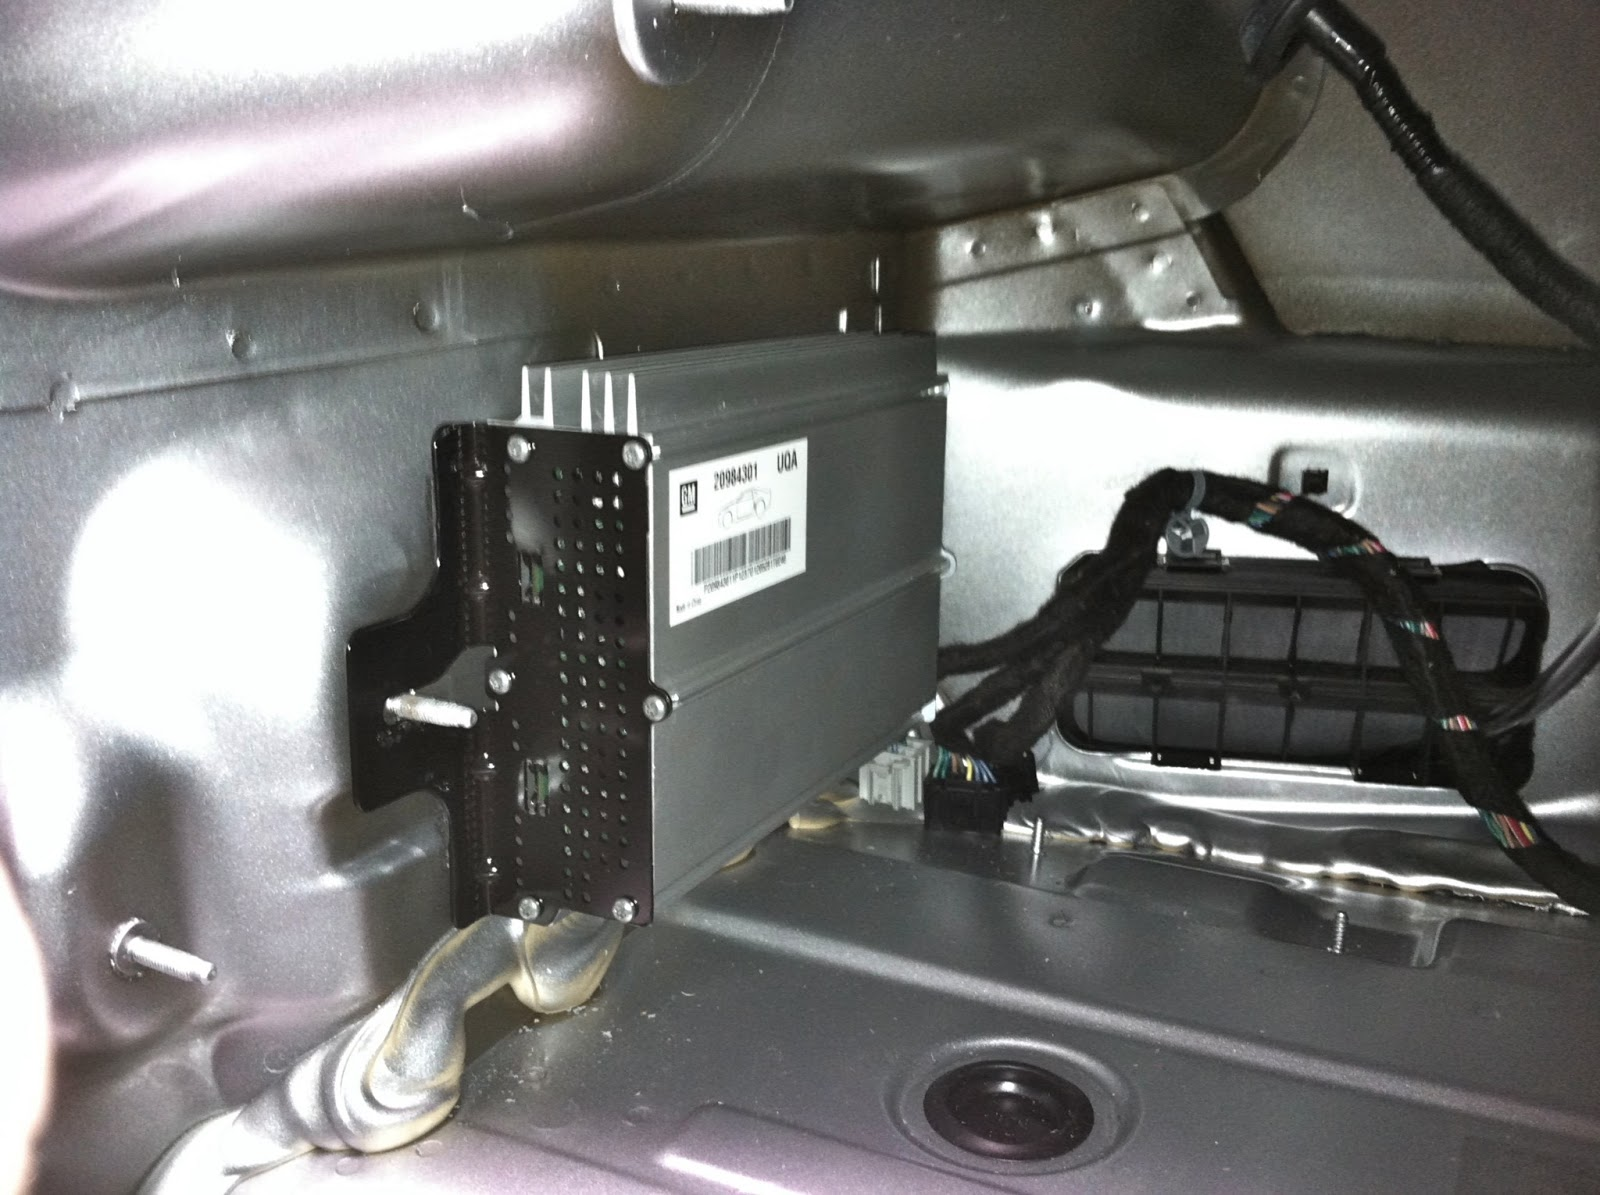 2012 Chevy Camaro Factory   Bypass on toyota avalon 2008 fuse box locations